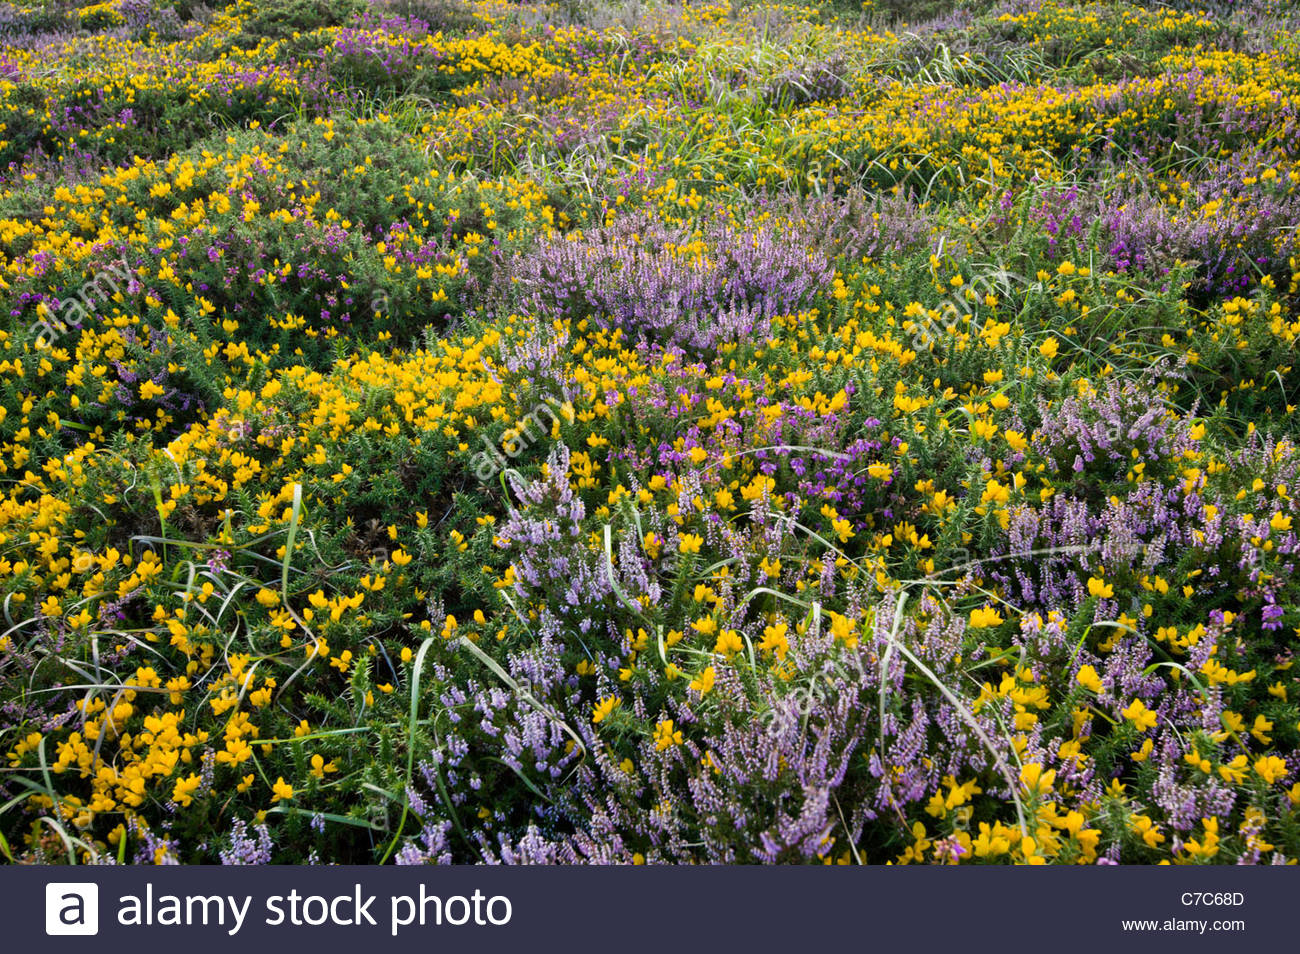 Late summer heather and gorse, Dartmoor National Park, Devon, England - Stock Image